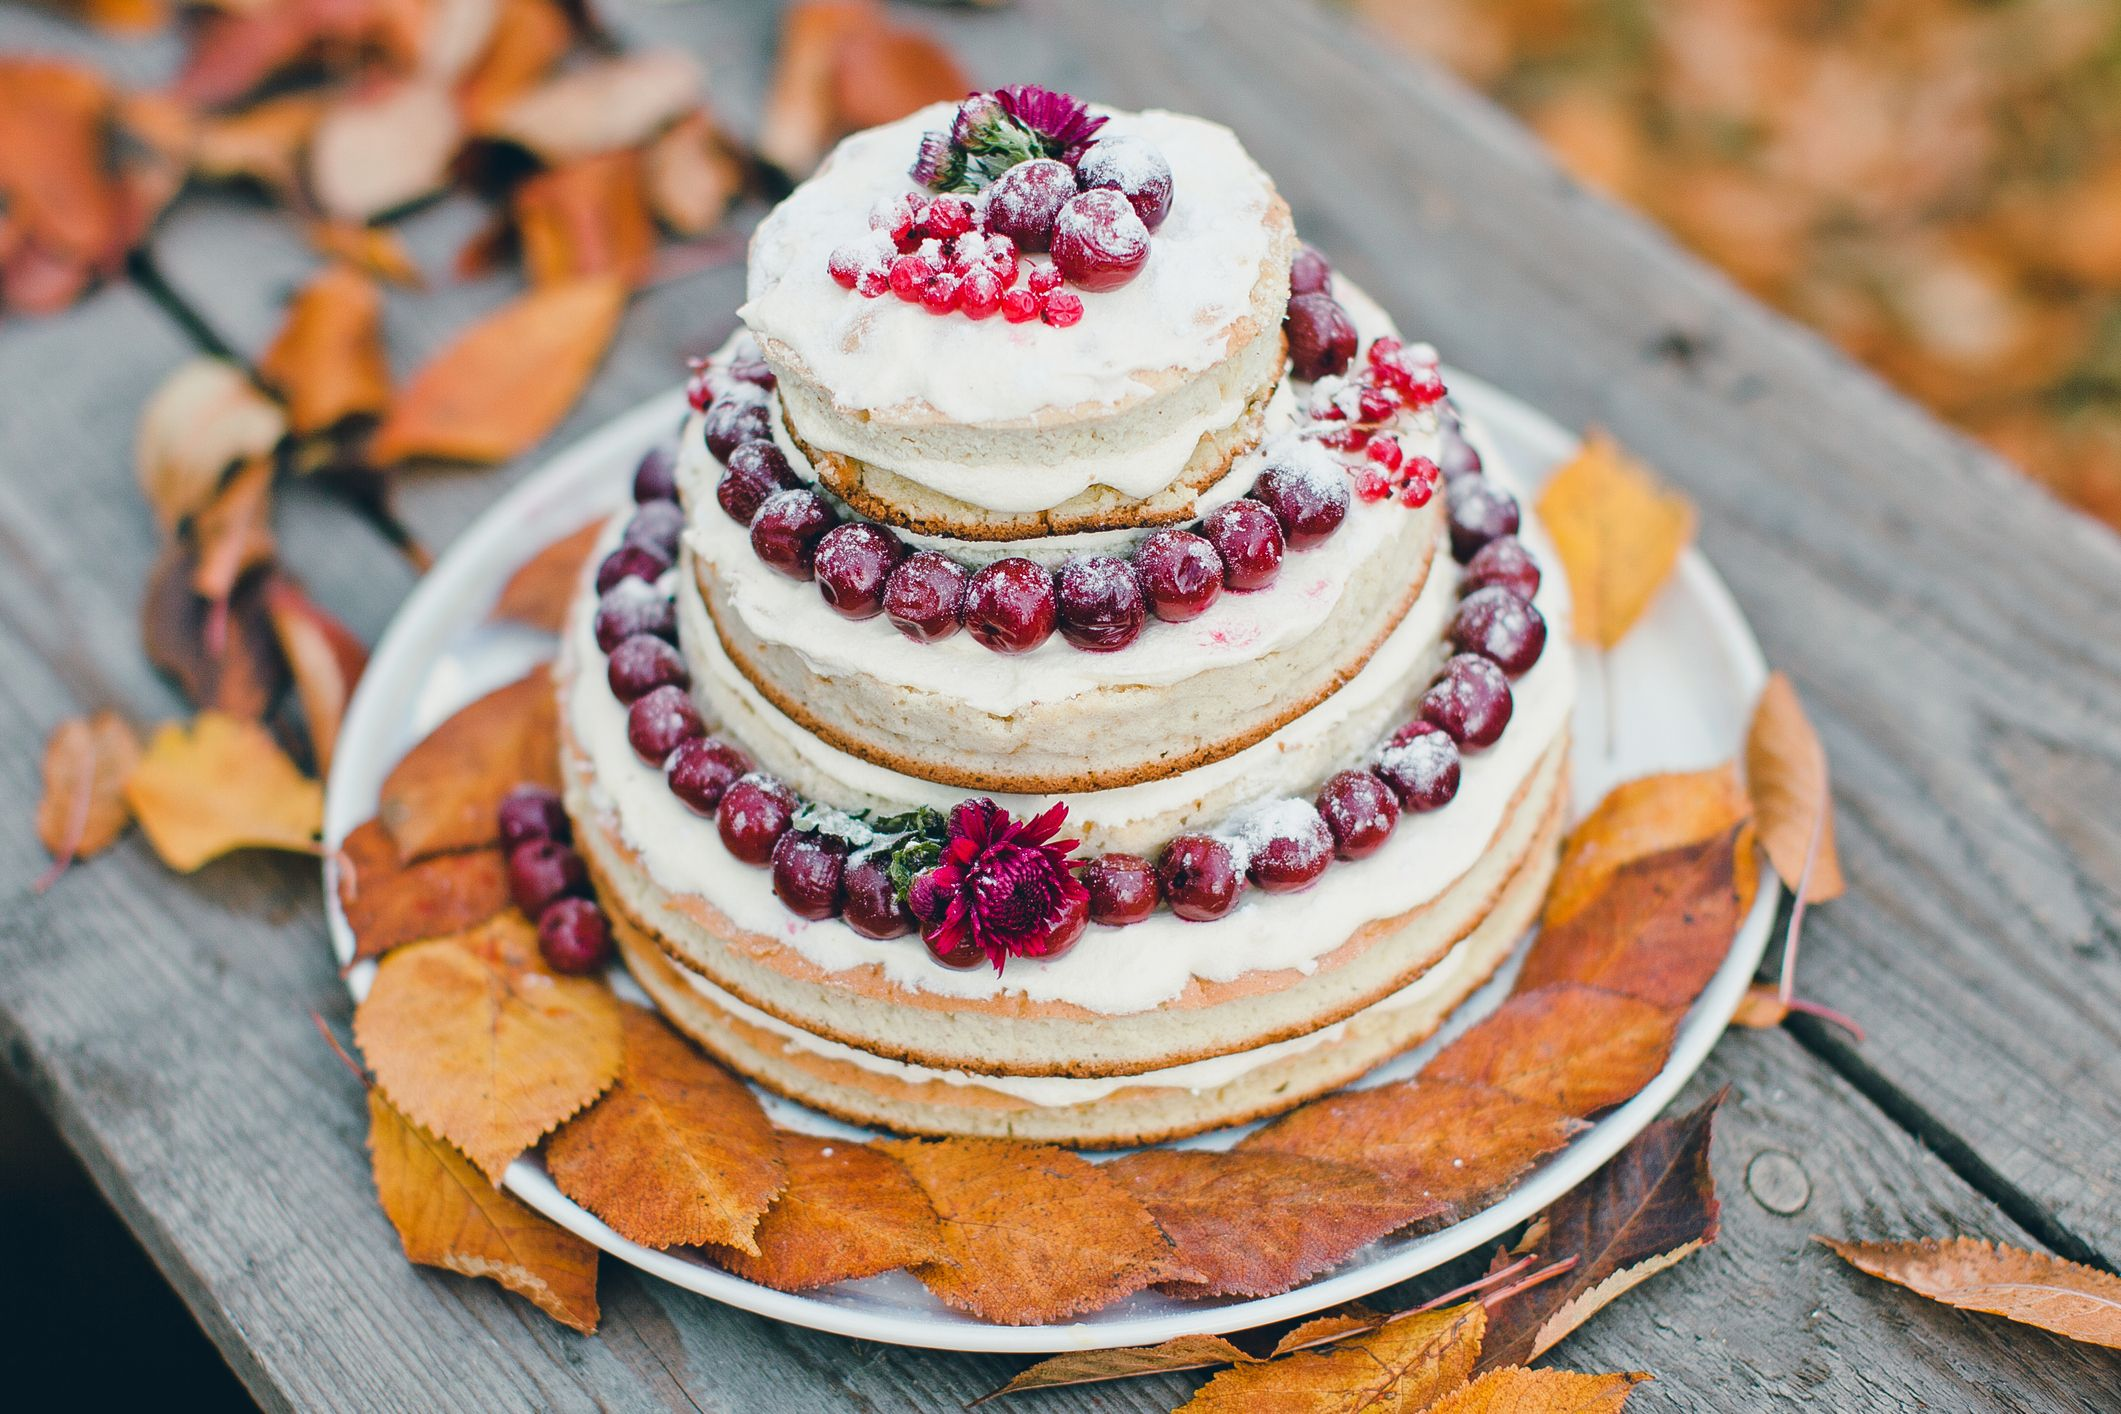 20 Best Fall Wedding Cakes That Are Perfect for Your Autumn Nuptials